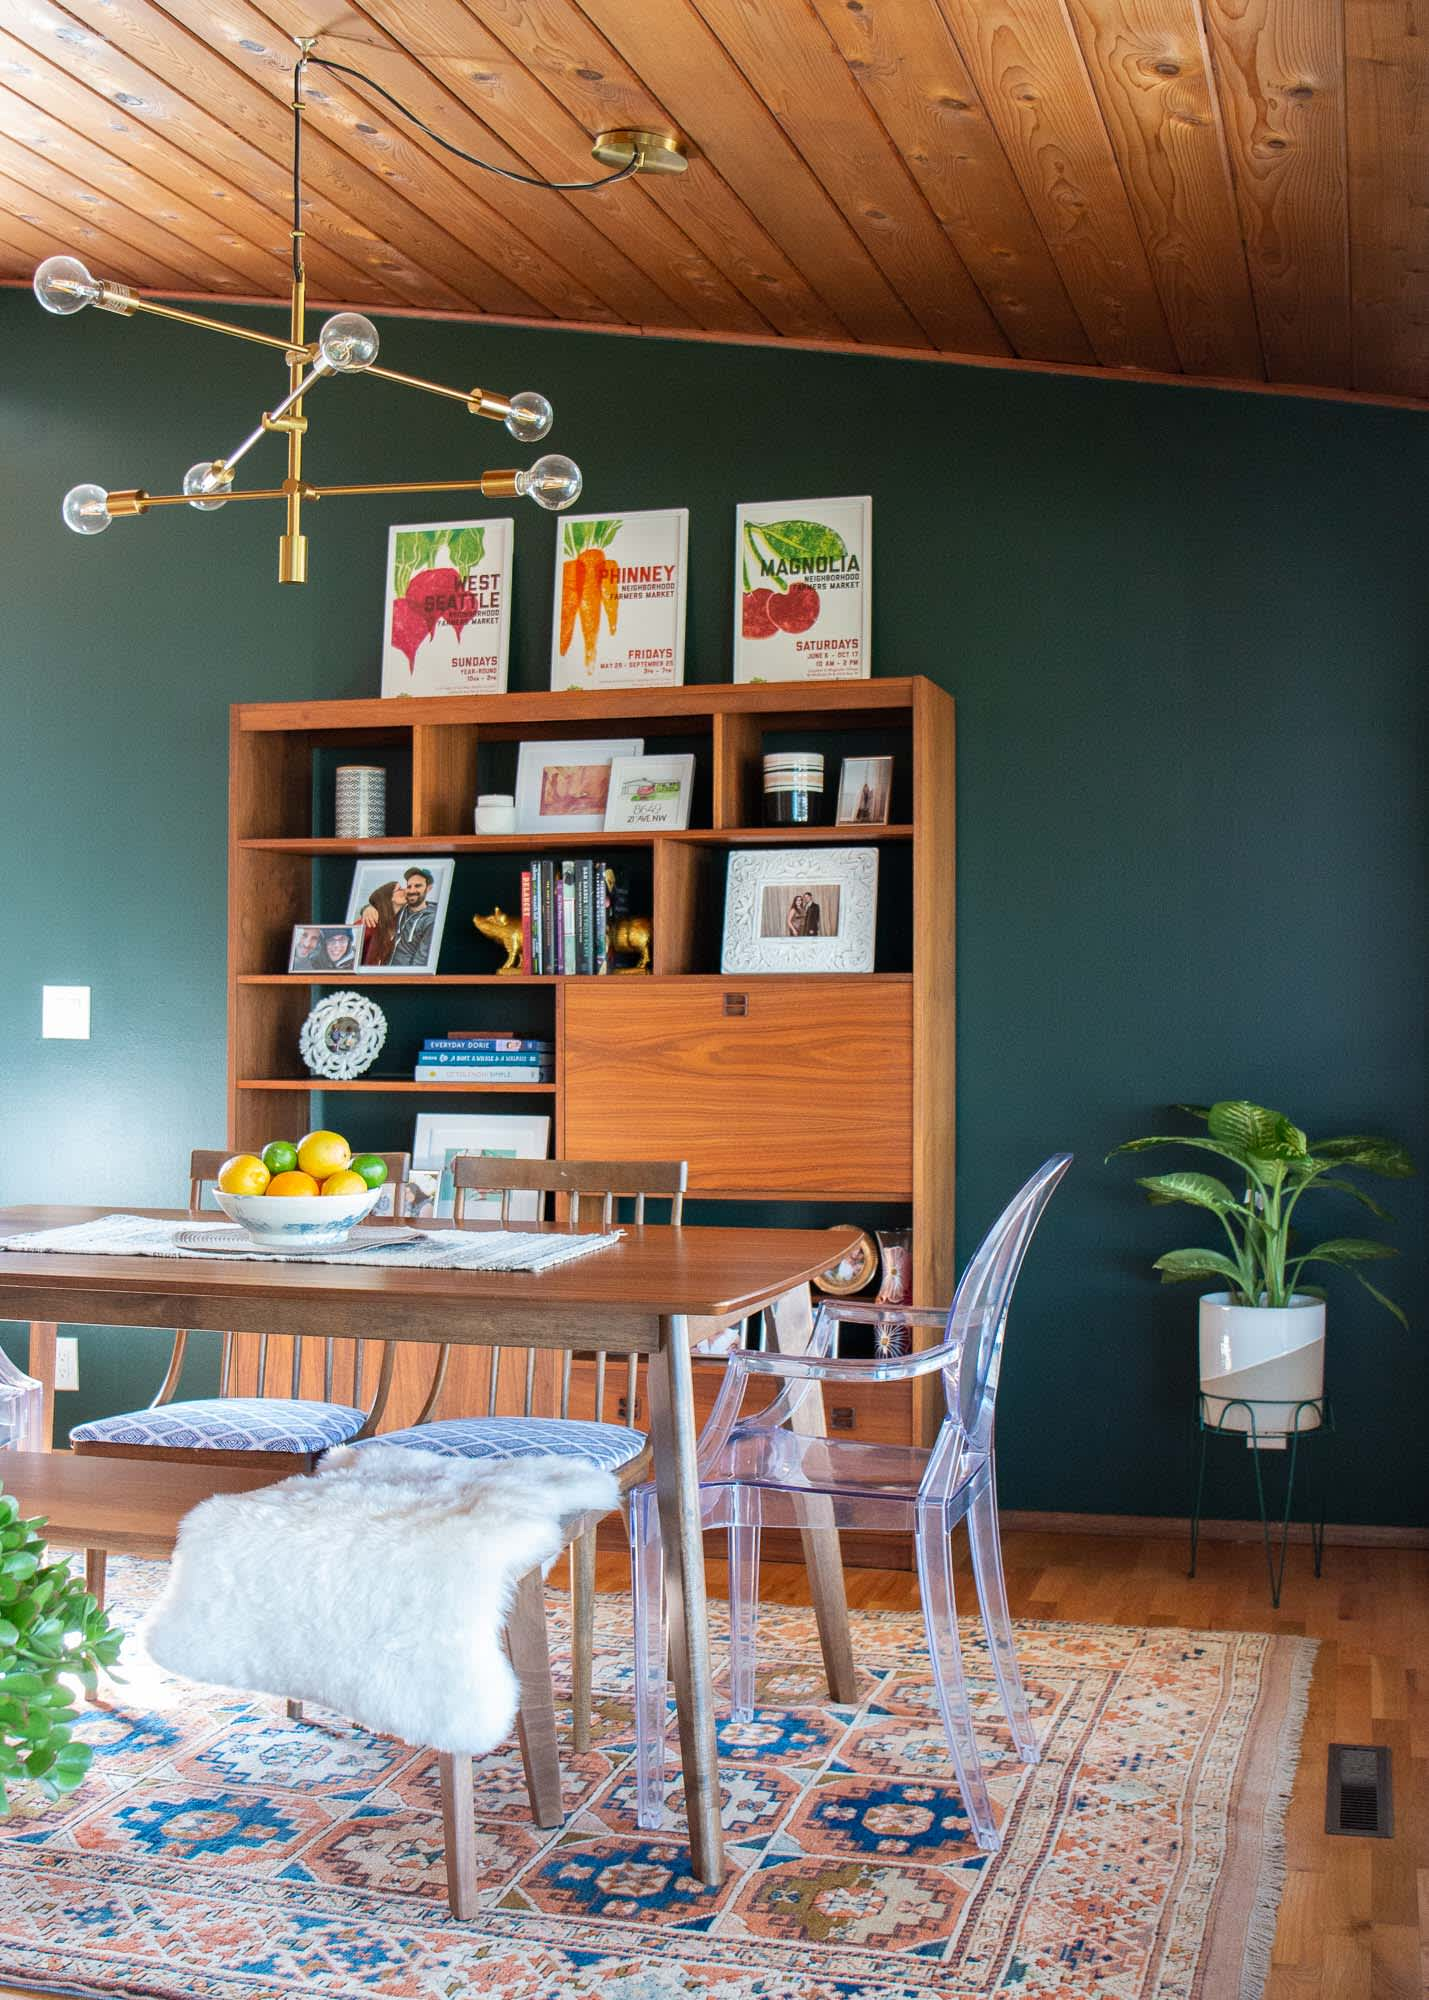 A Seattle Home's Dining Room Has a Great Green Accent Wall: gallery image 9